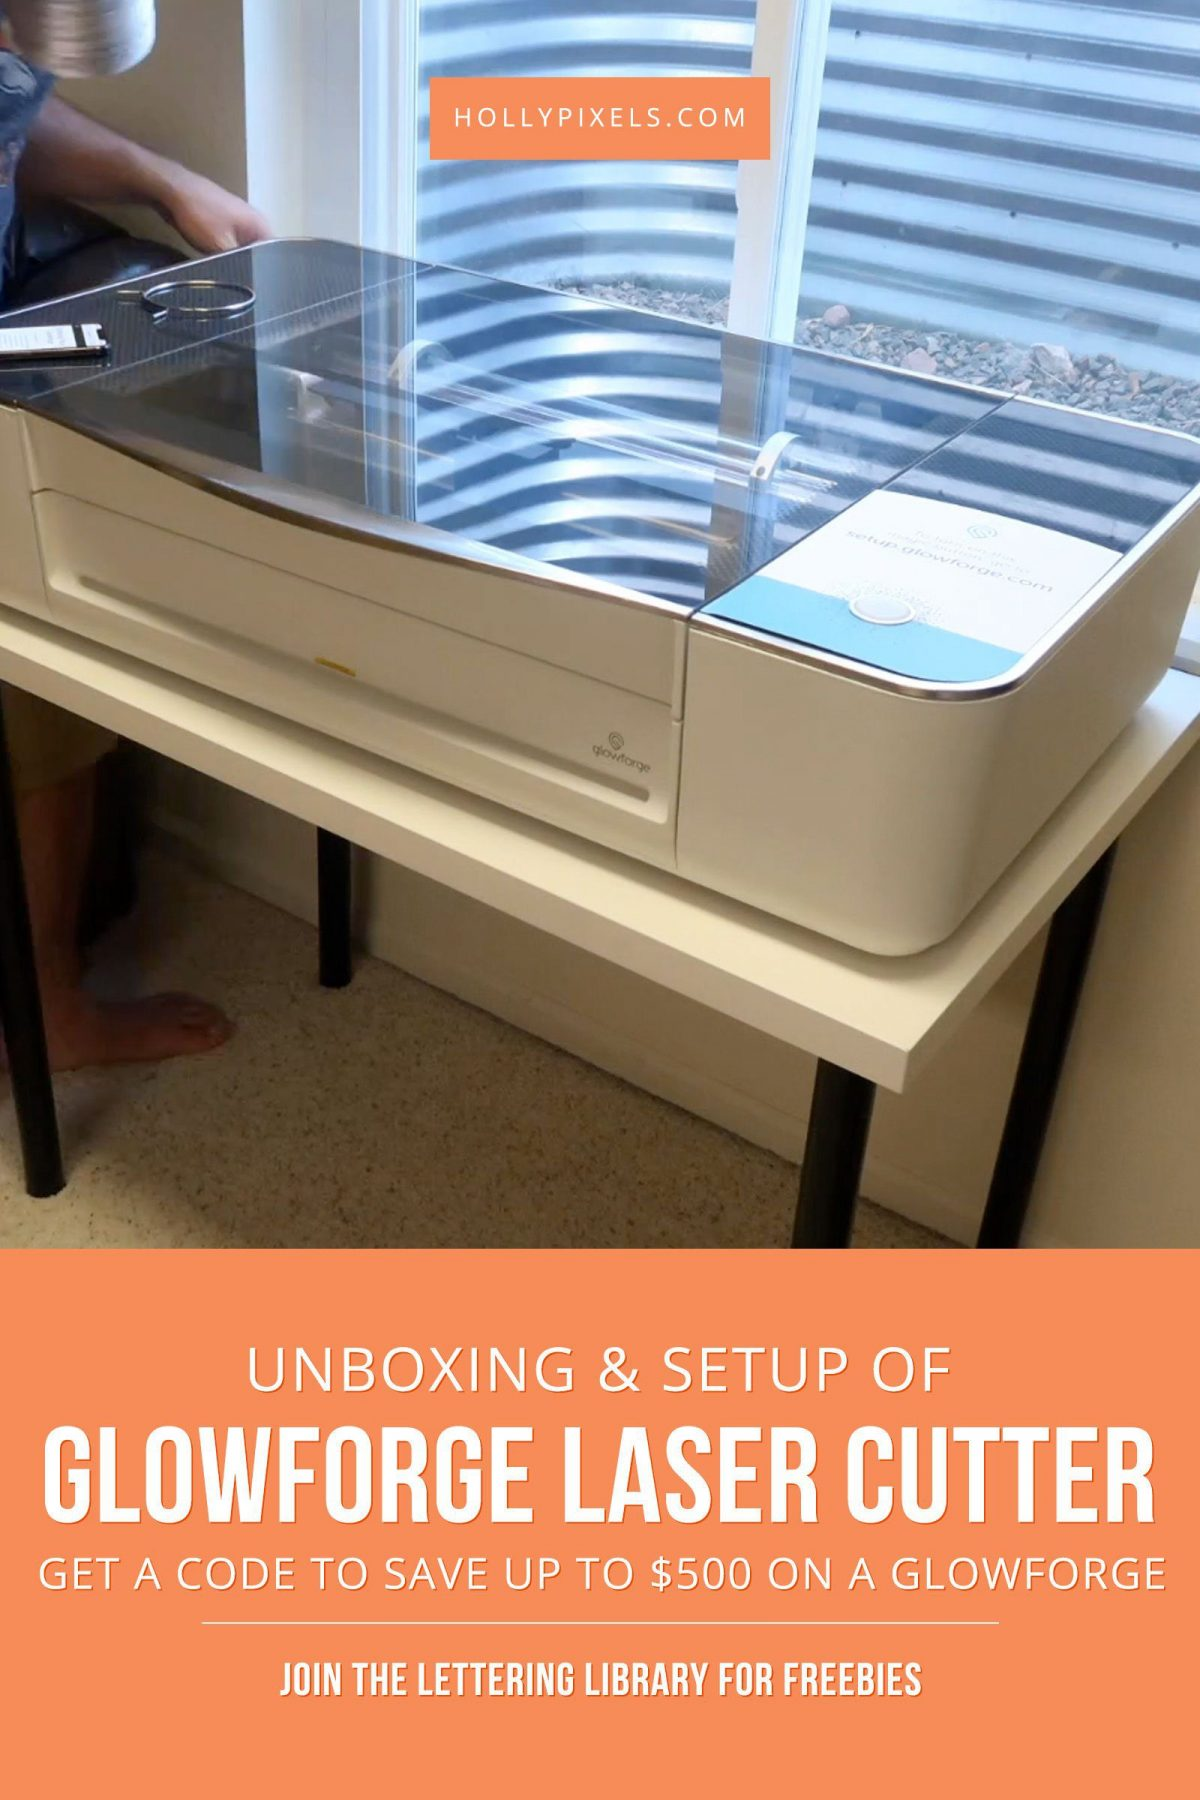 In today's post and video I'm going to be showing you the Glowforge Pro Unboxing and setup. We recently purchased this laser cutter for a separate entity of my business that doesn't have much to do with Holly Pixels. But, I wanted to showcase it here to show you ways you can turn your lettering into a business.